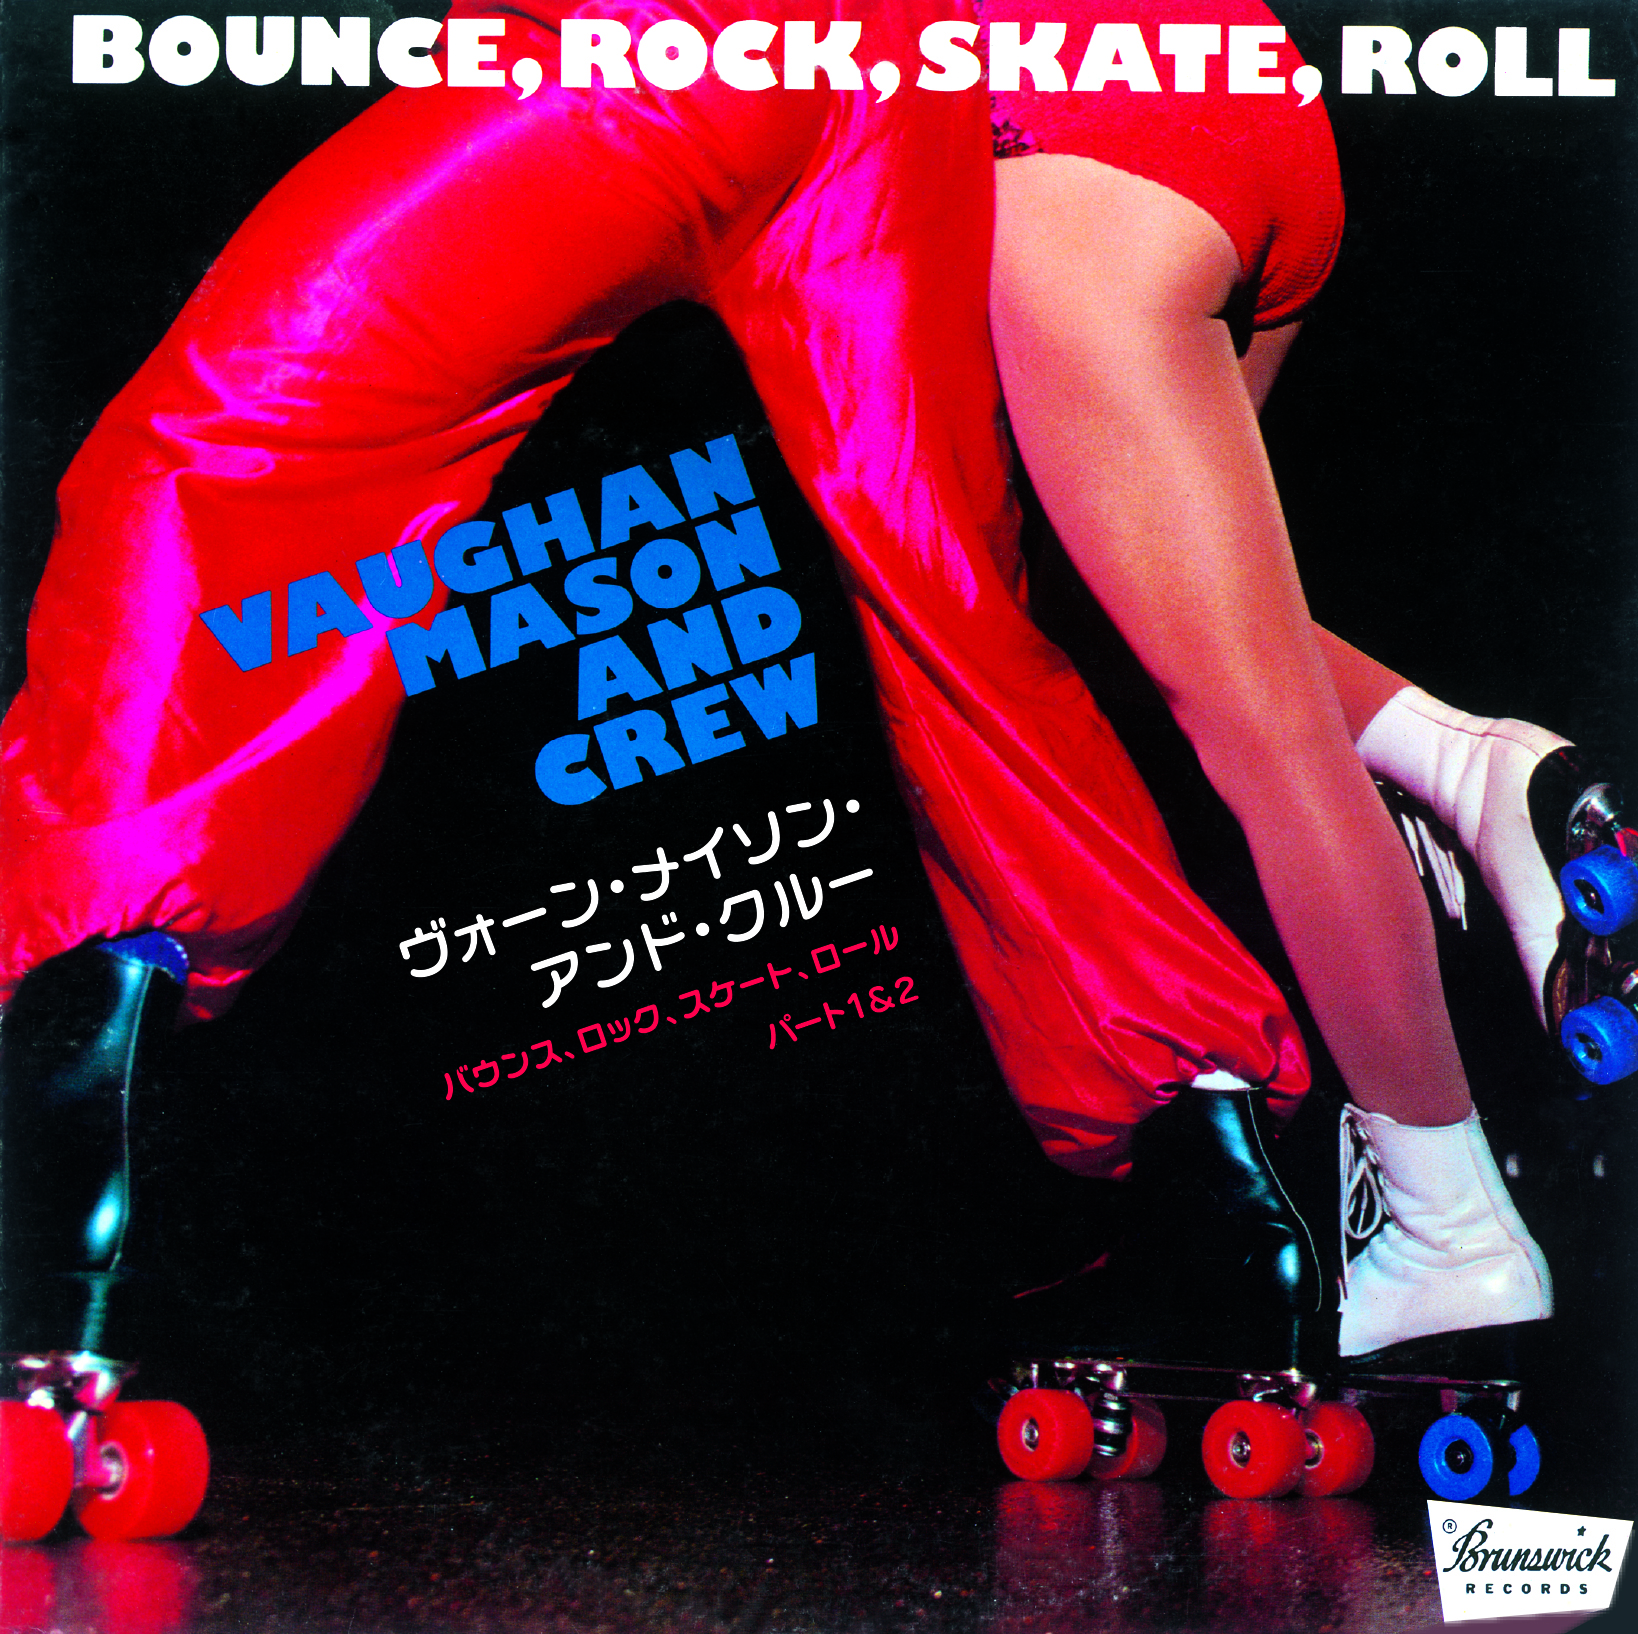 07-026 Vaughan Mason And Crew – Bounce, Rock, Skate, Roll